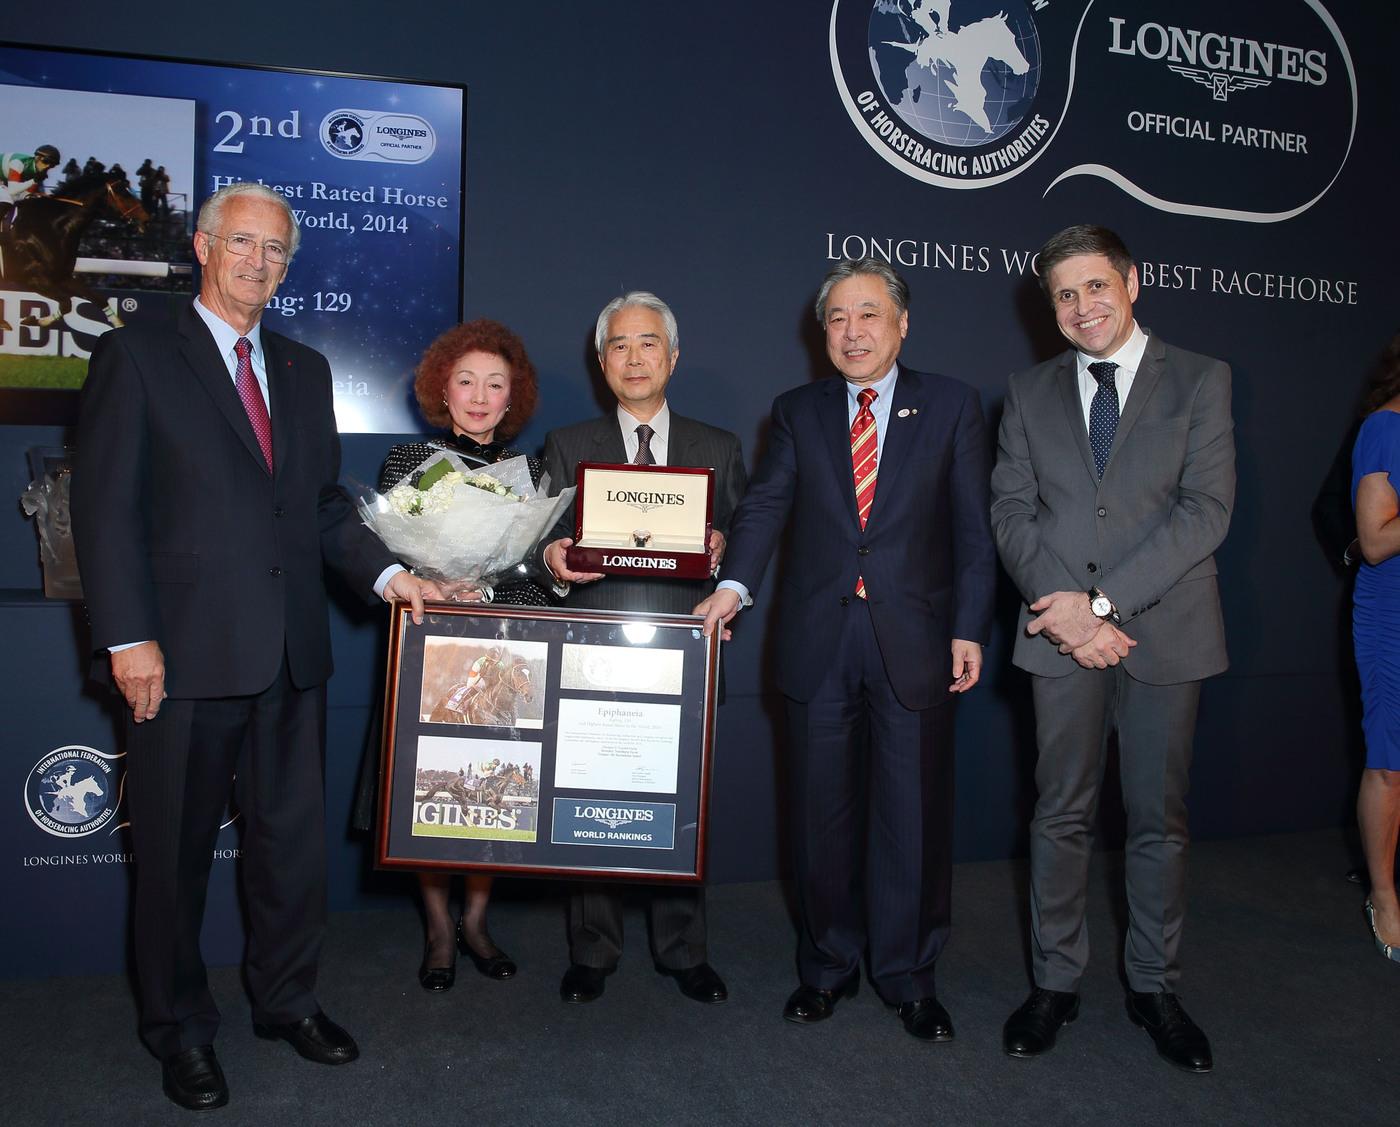 Longines Flat Racing Event: Just A Way honoured as the 2014 Longines World's Best Racehorse  3